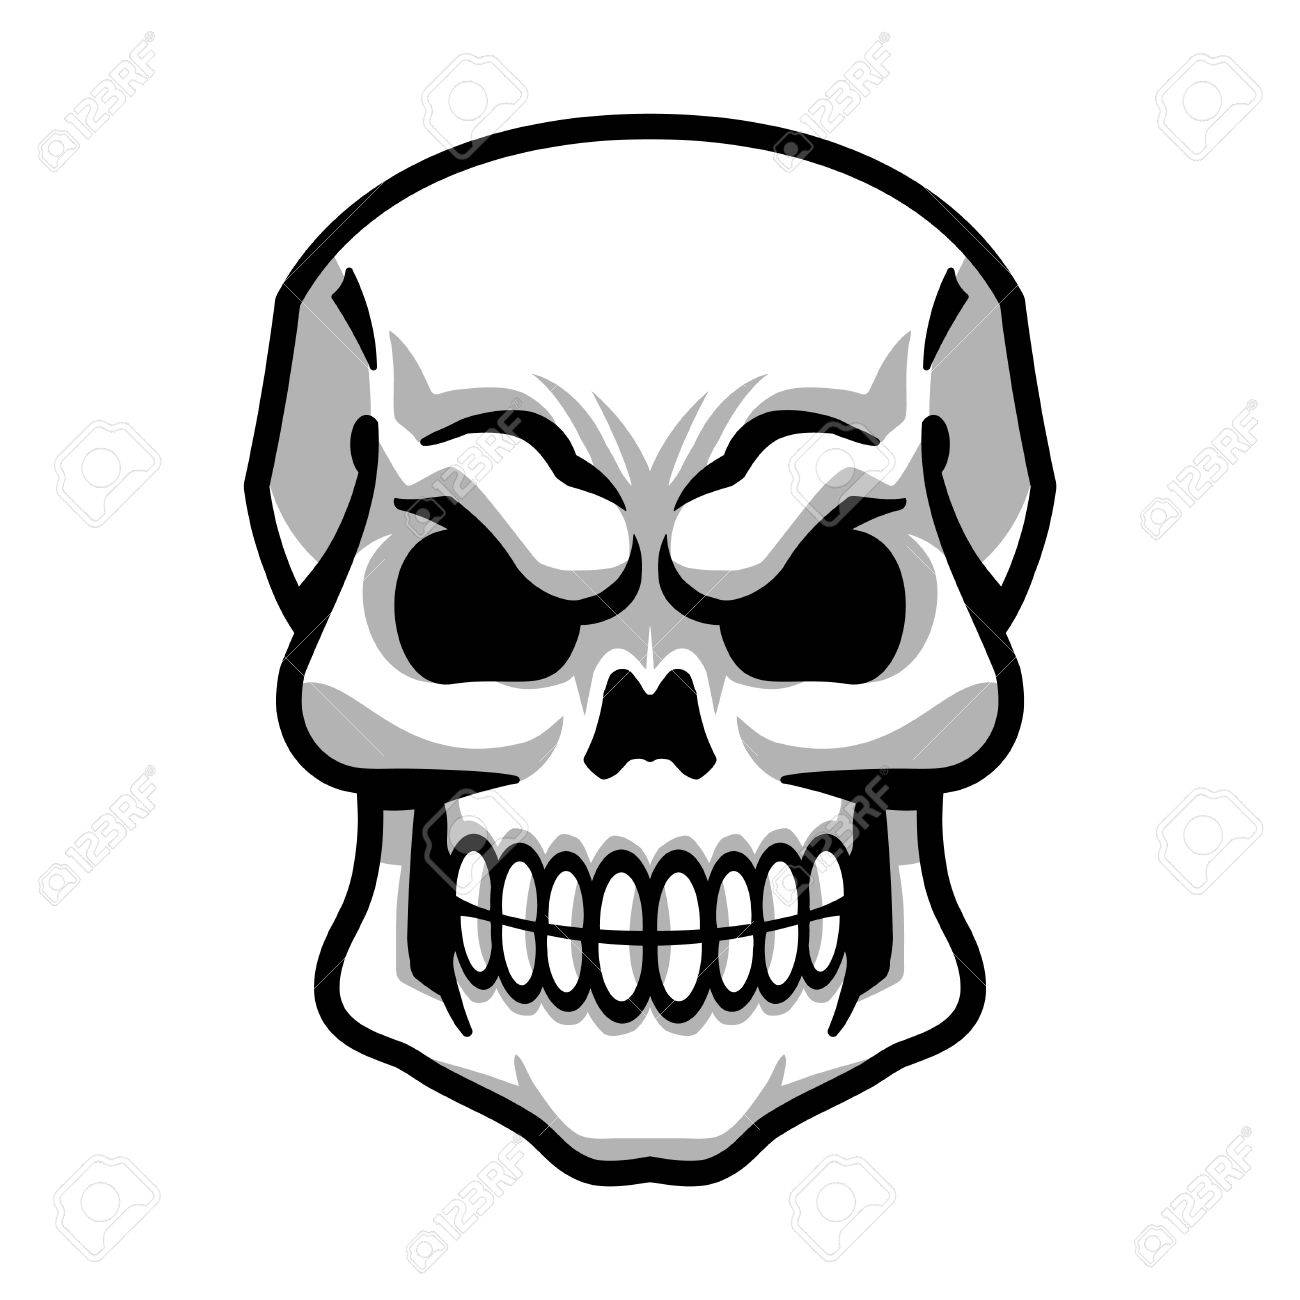 skull vector icon royalty free cliparts vectors and stock rh 123rf com free skull vector art free skull vector art